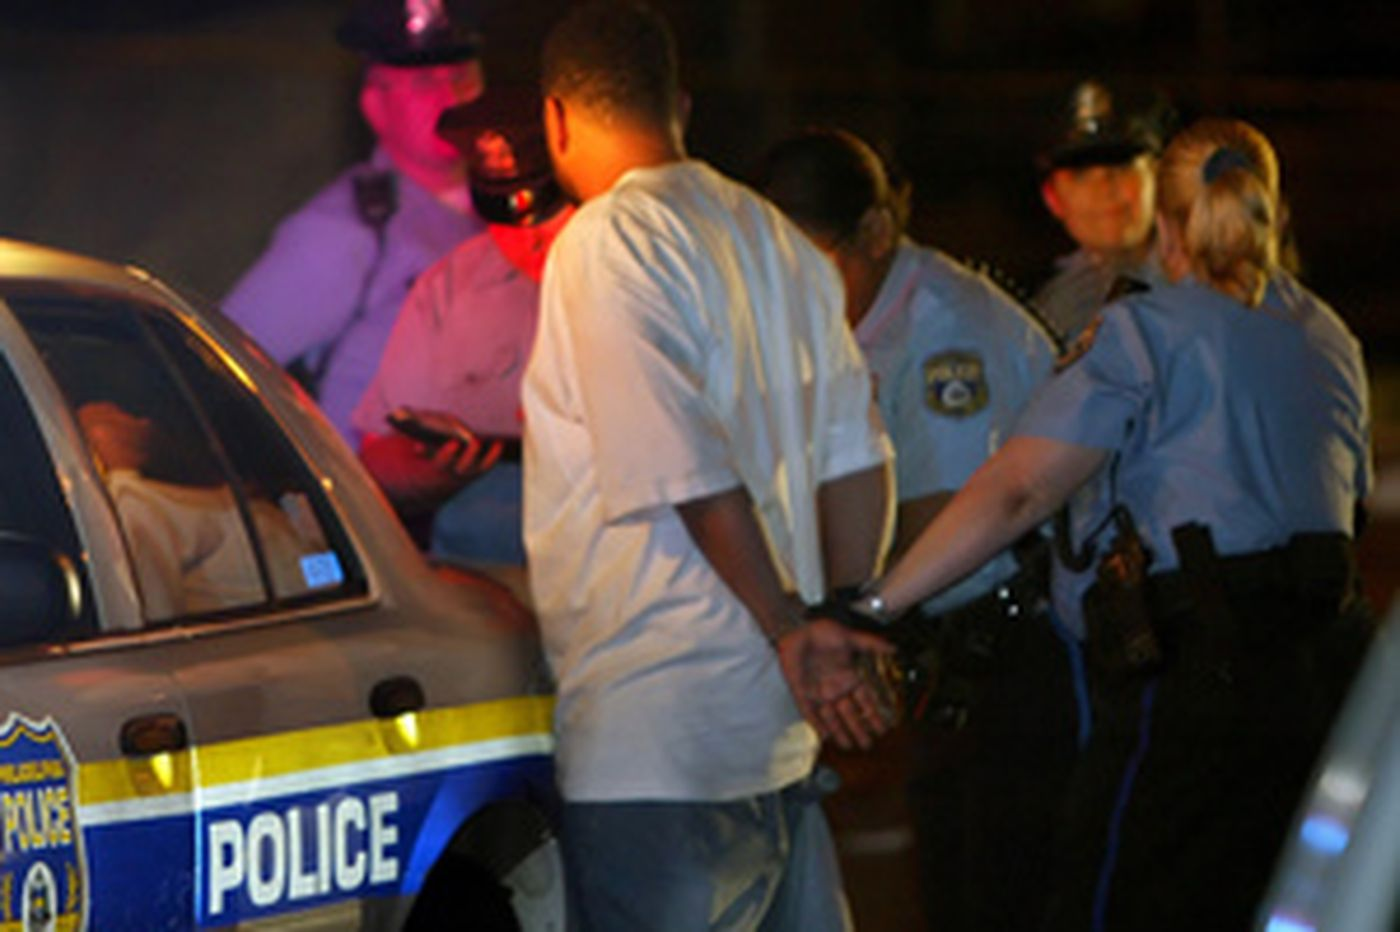 More than racist Facebook posts, police vehicle stops are driving distrust | Editorial